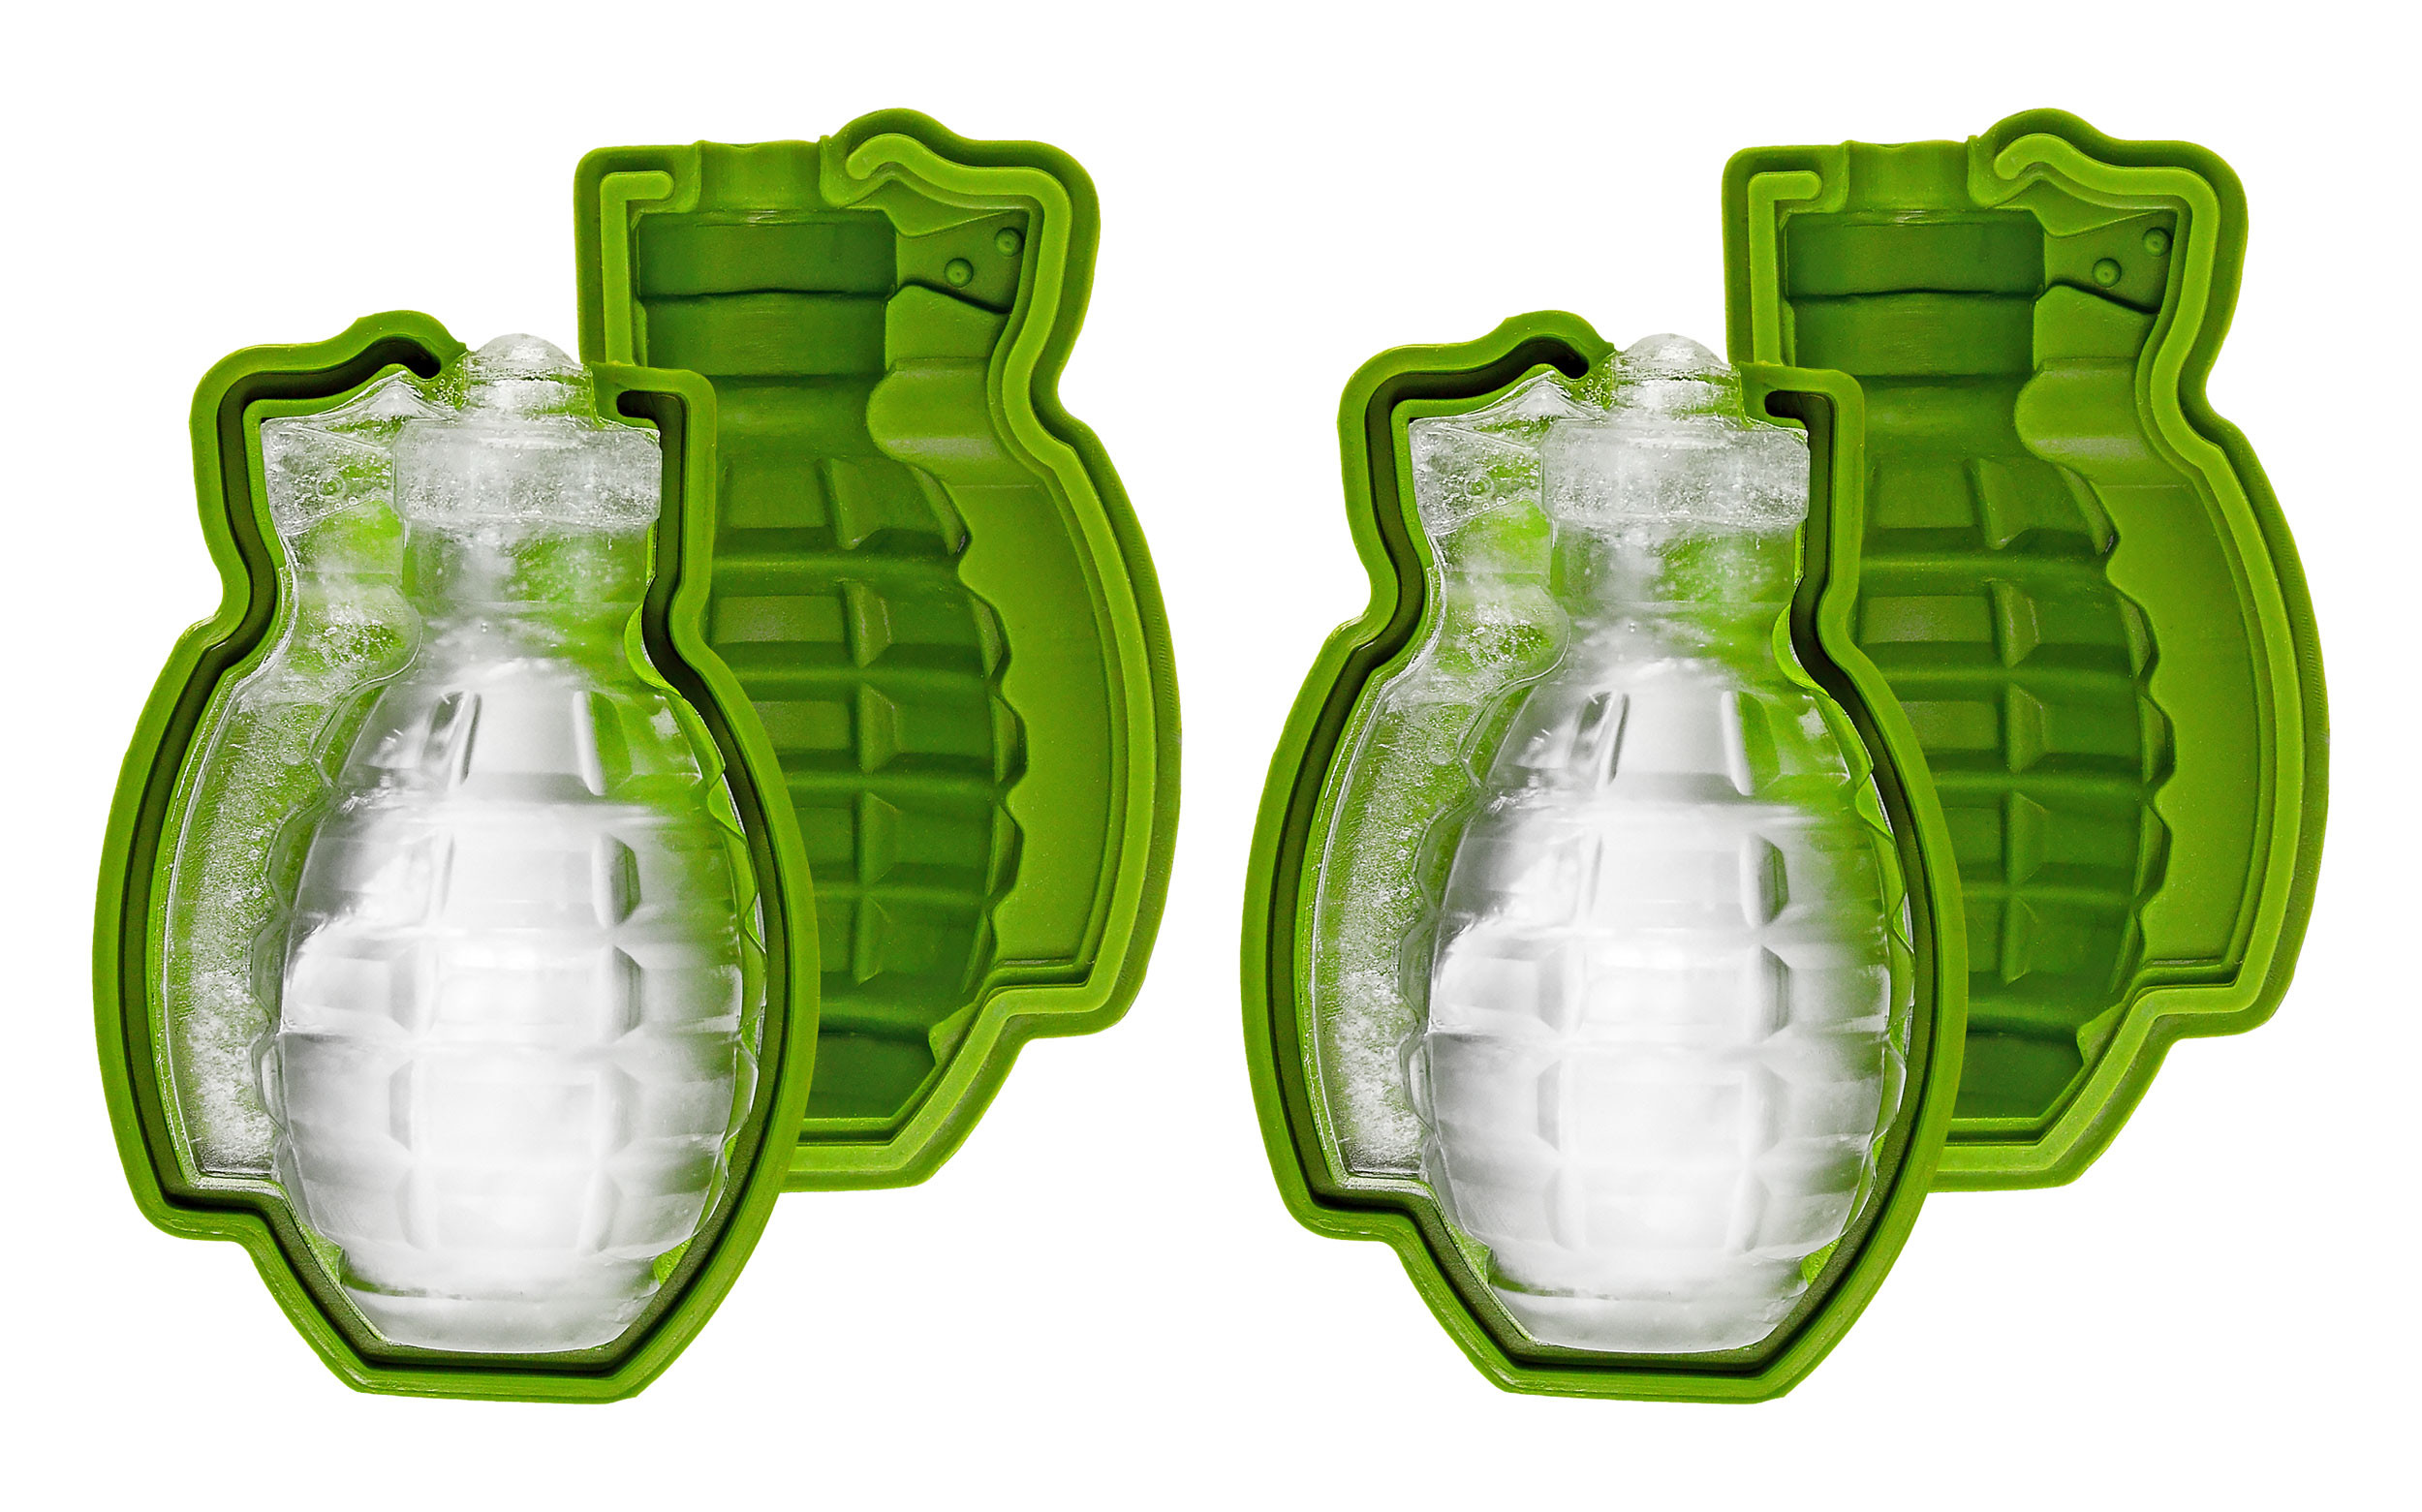 Grenade Ice Cube Mould, 2 Pack